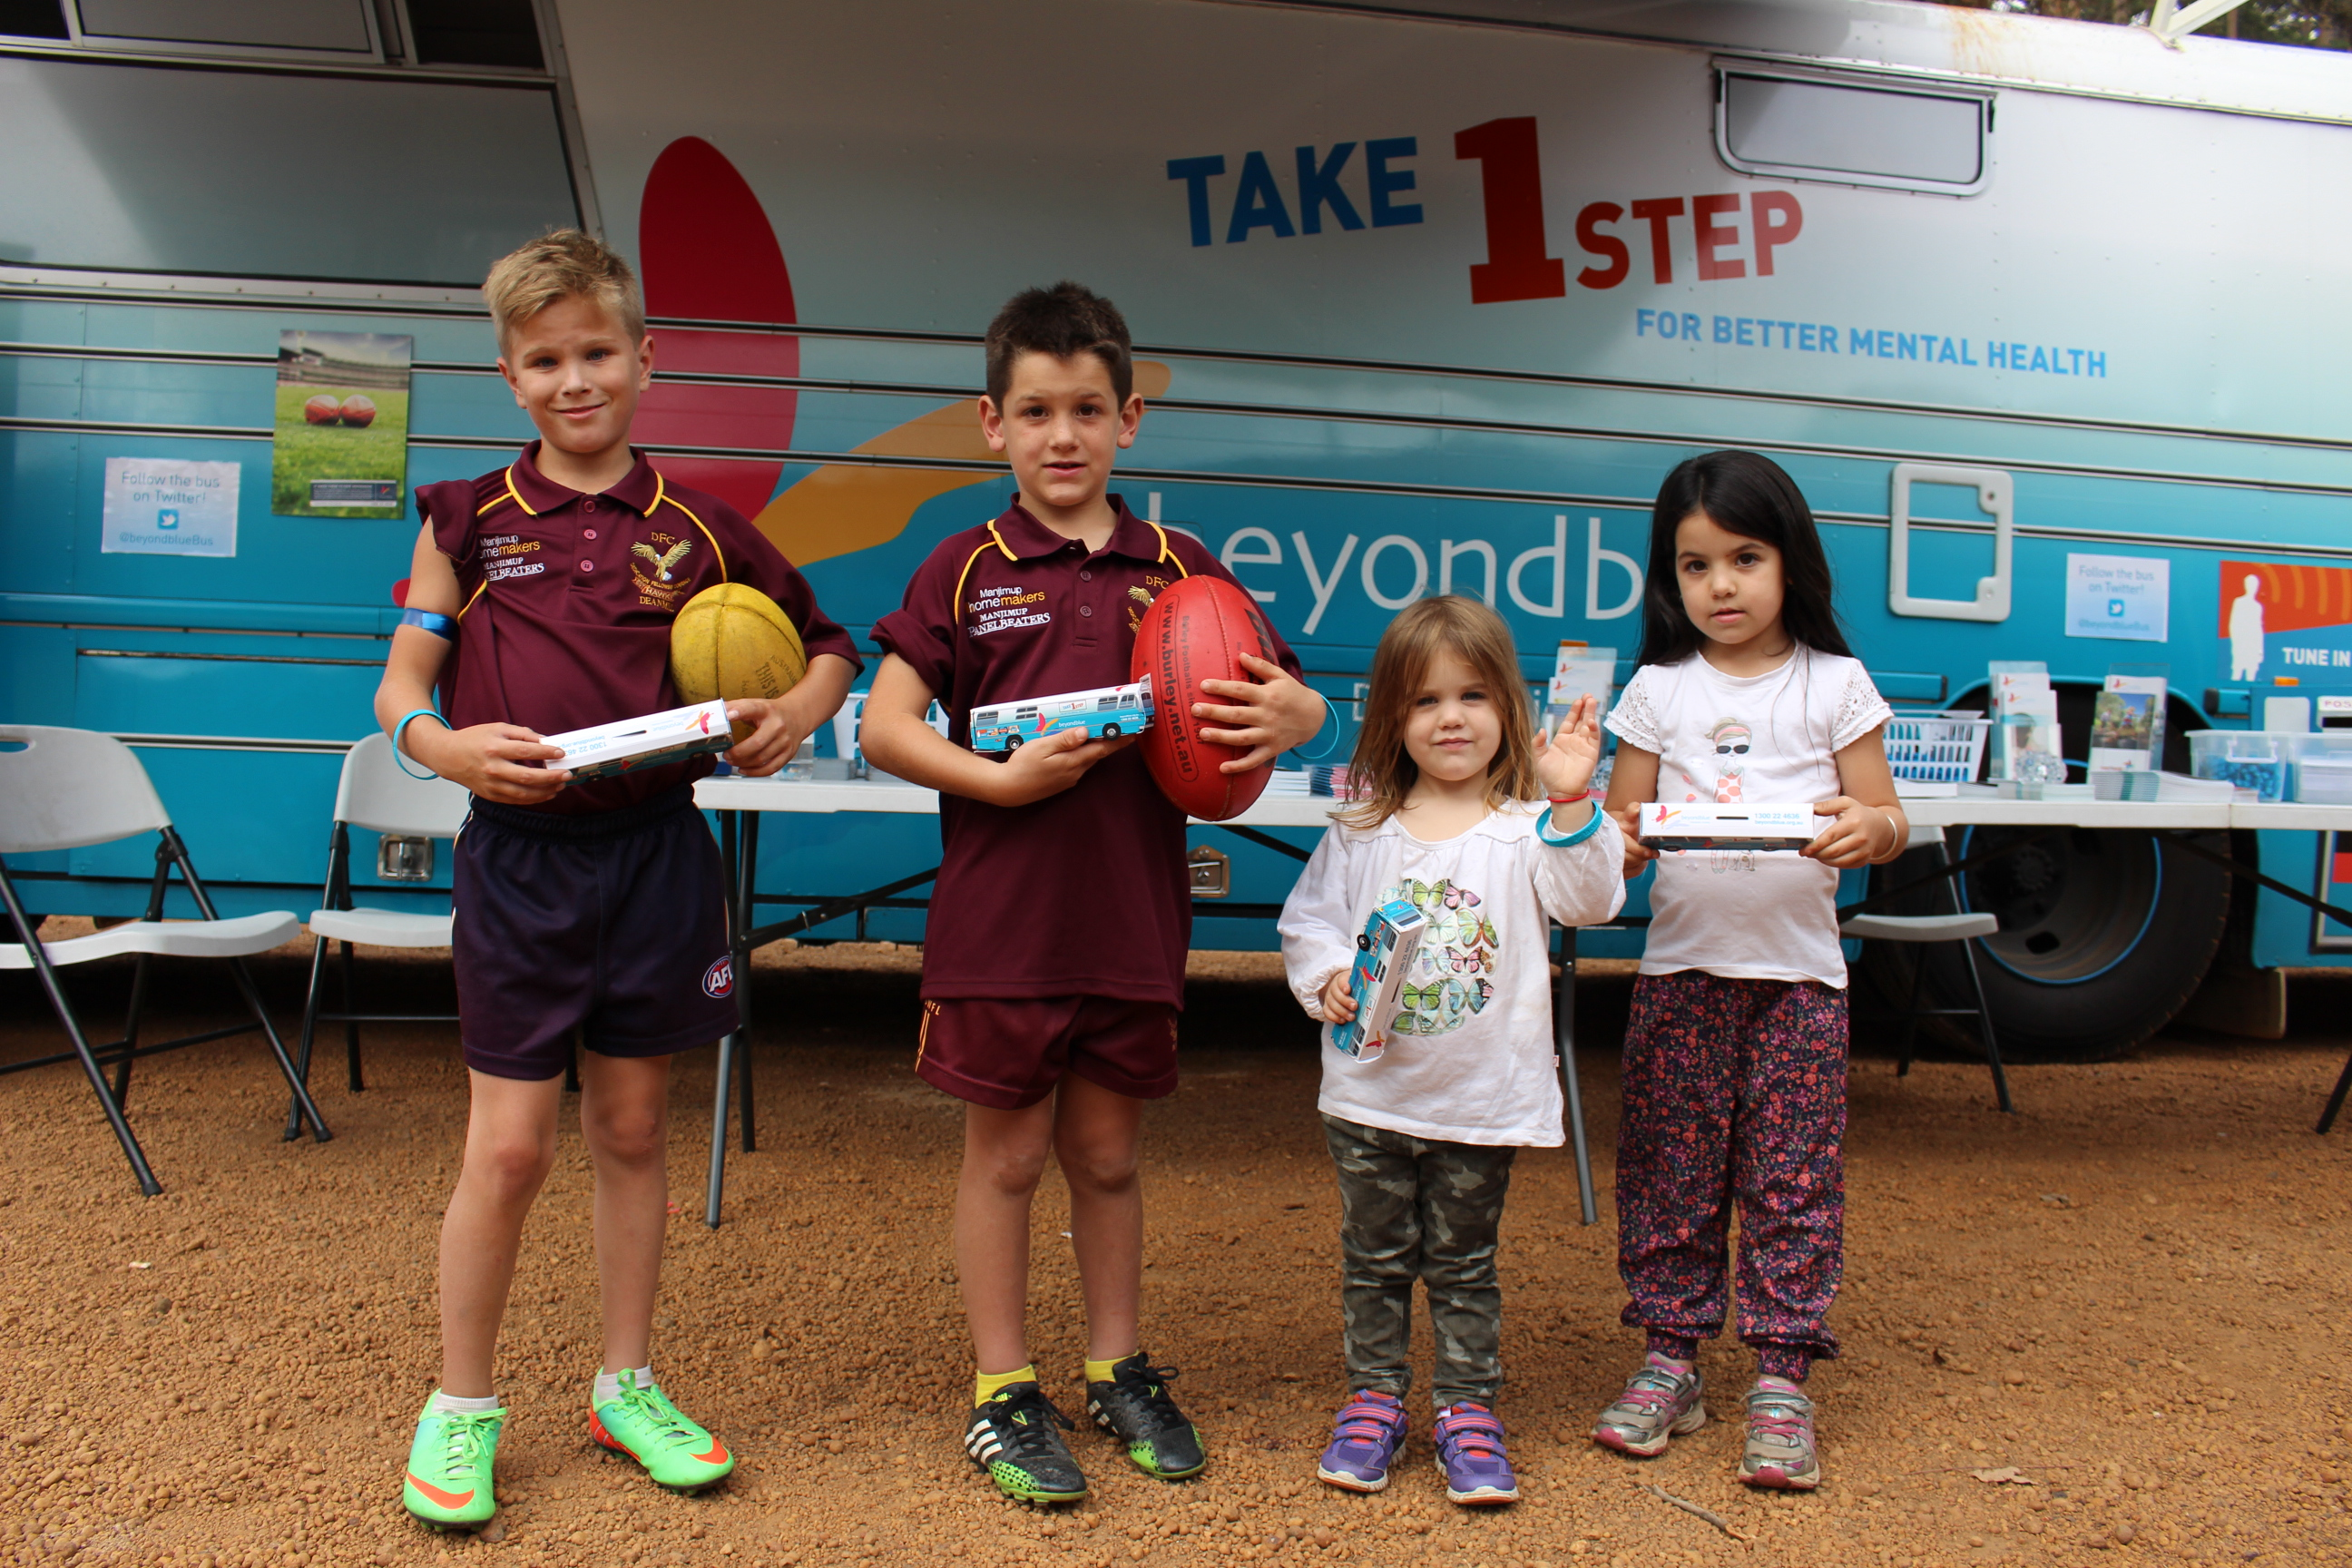 Mini 'Roadshow Rhondas' were well received by the youngsters in Manjimup: WA.